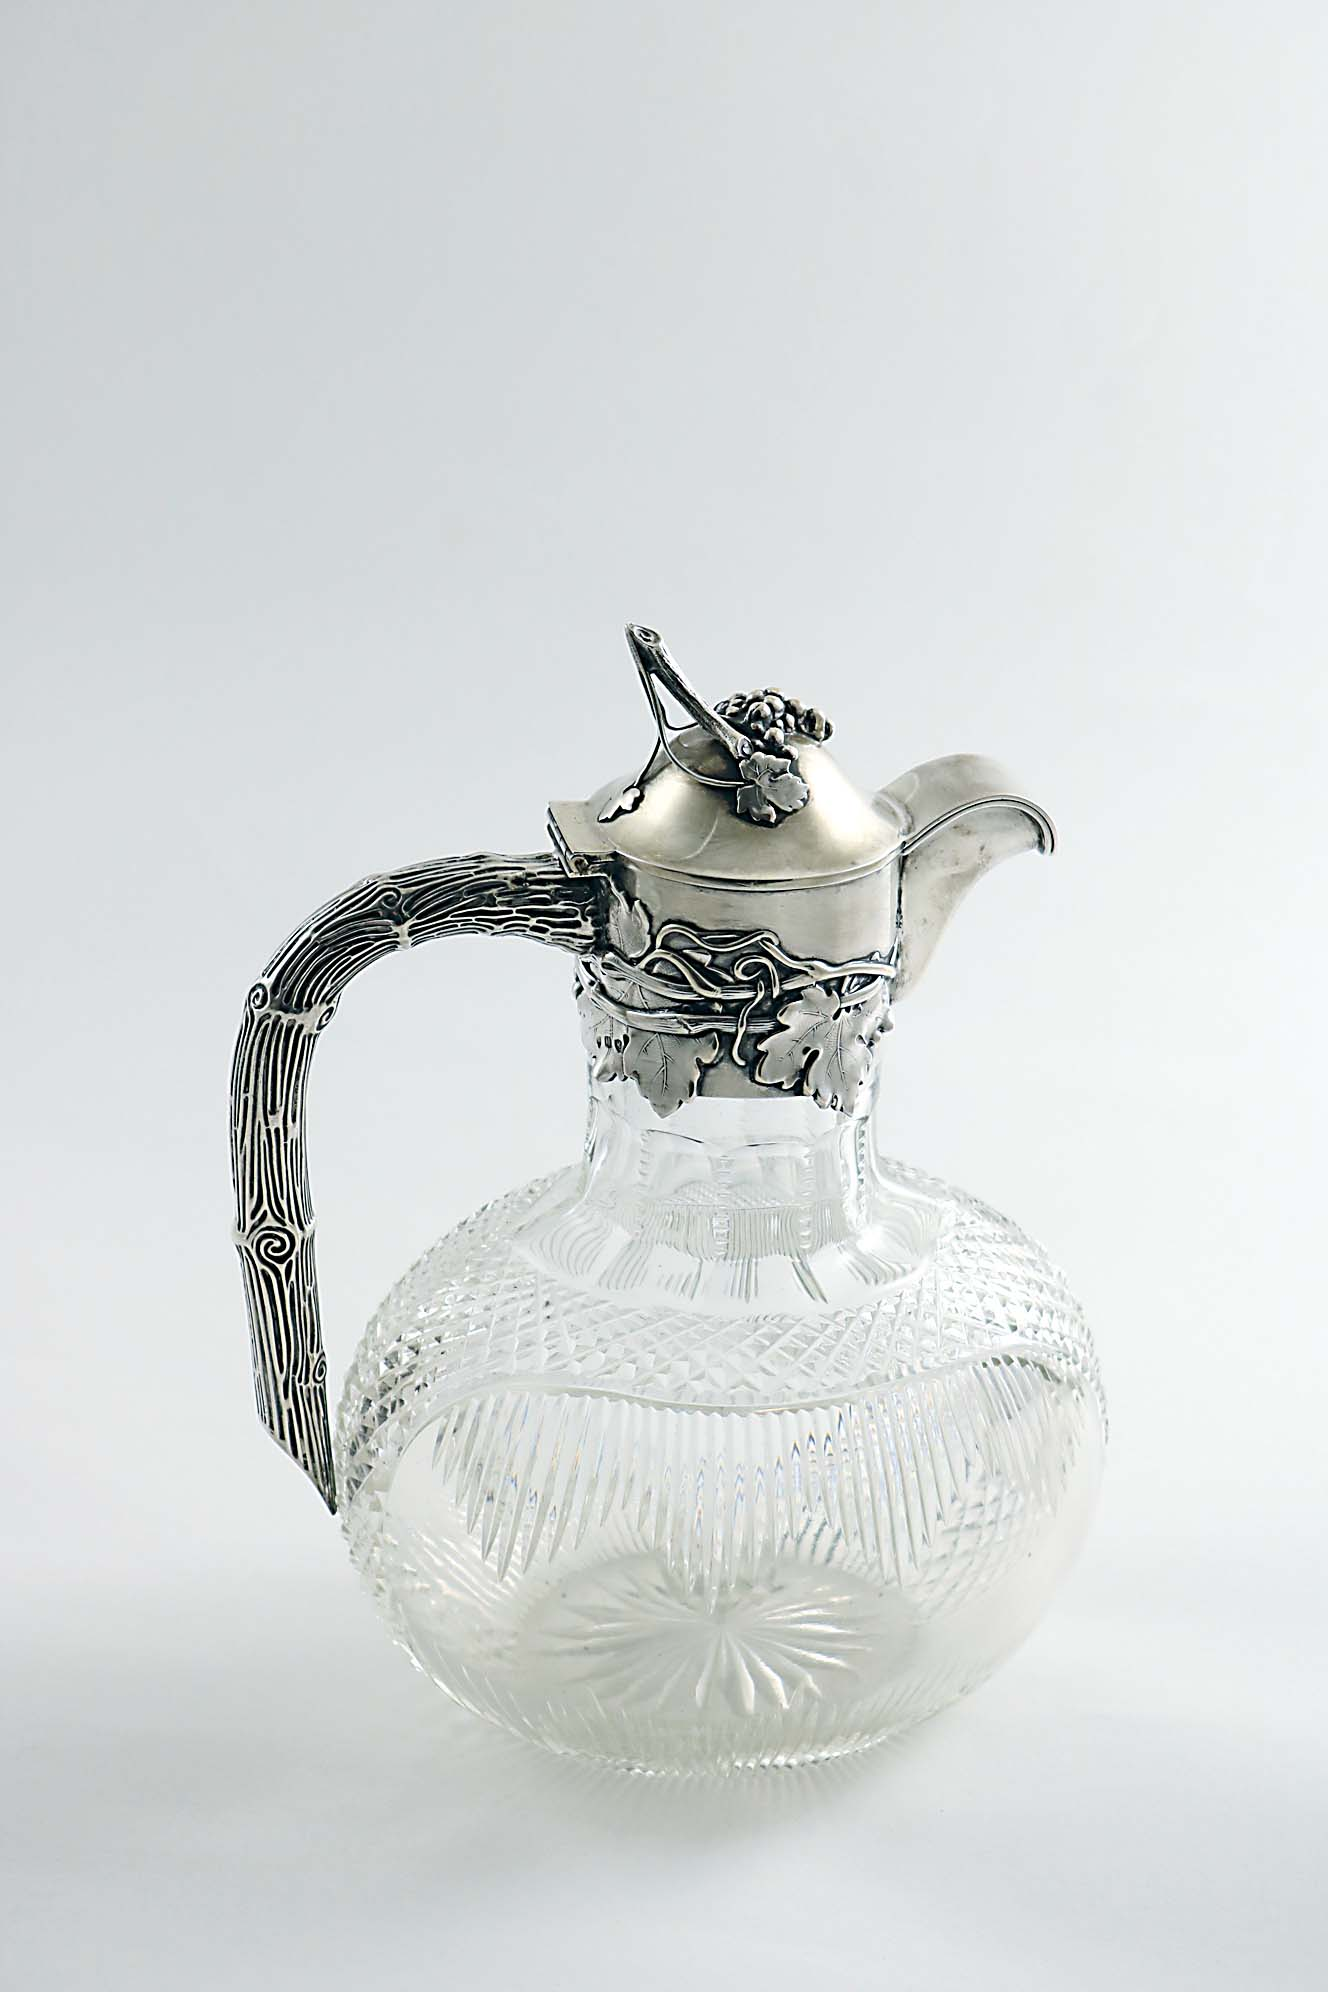 Lot 538 - AN EARLY 20TH CENTURY GERMAN MOUNTED CUT-GLASS CLARET JUG with a rounded oval body, a bark-